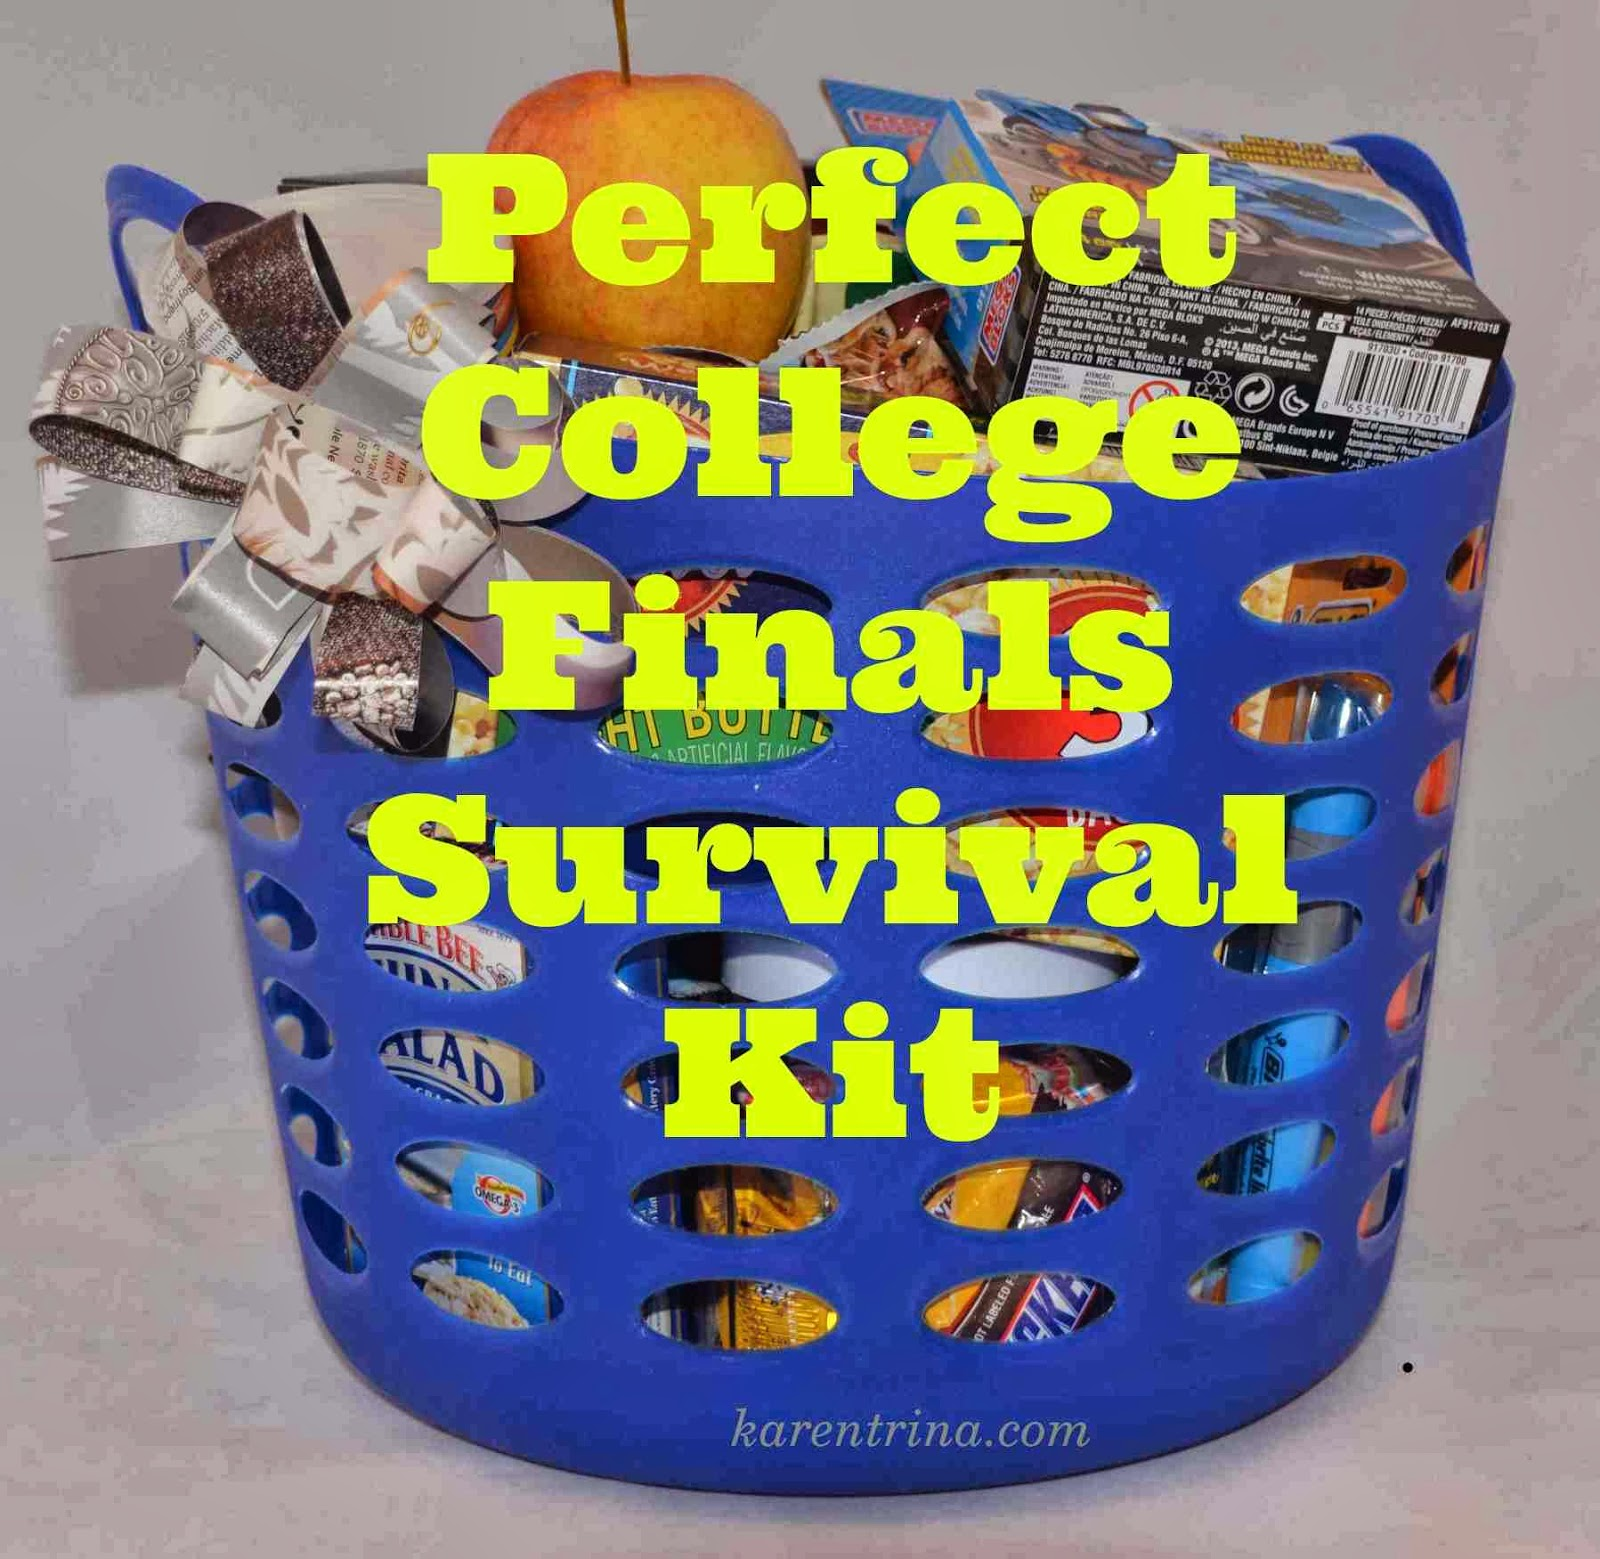 Pics photos funny college survival kit ideas - Create The Perfect College Finals Survival Kit